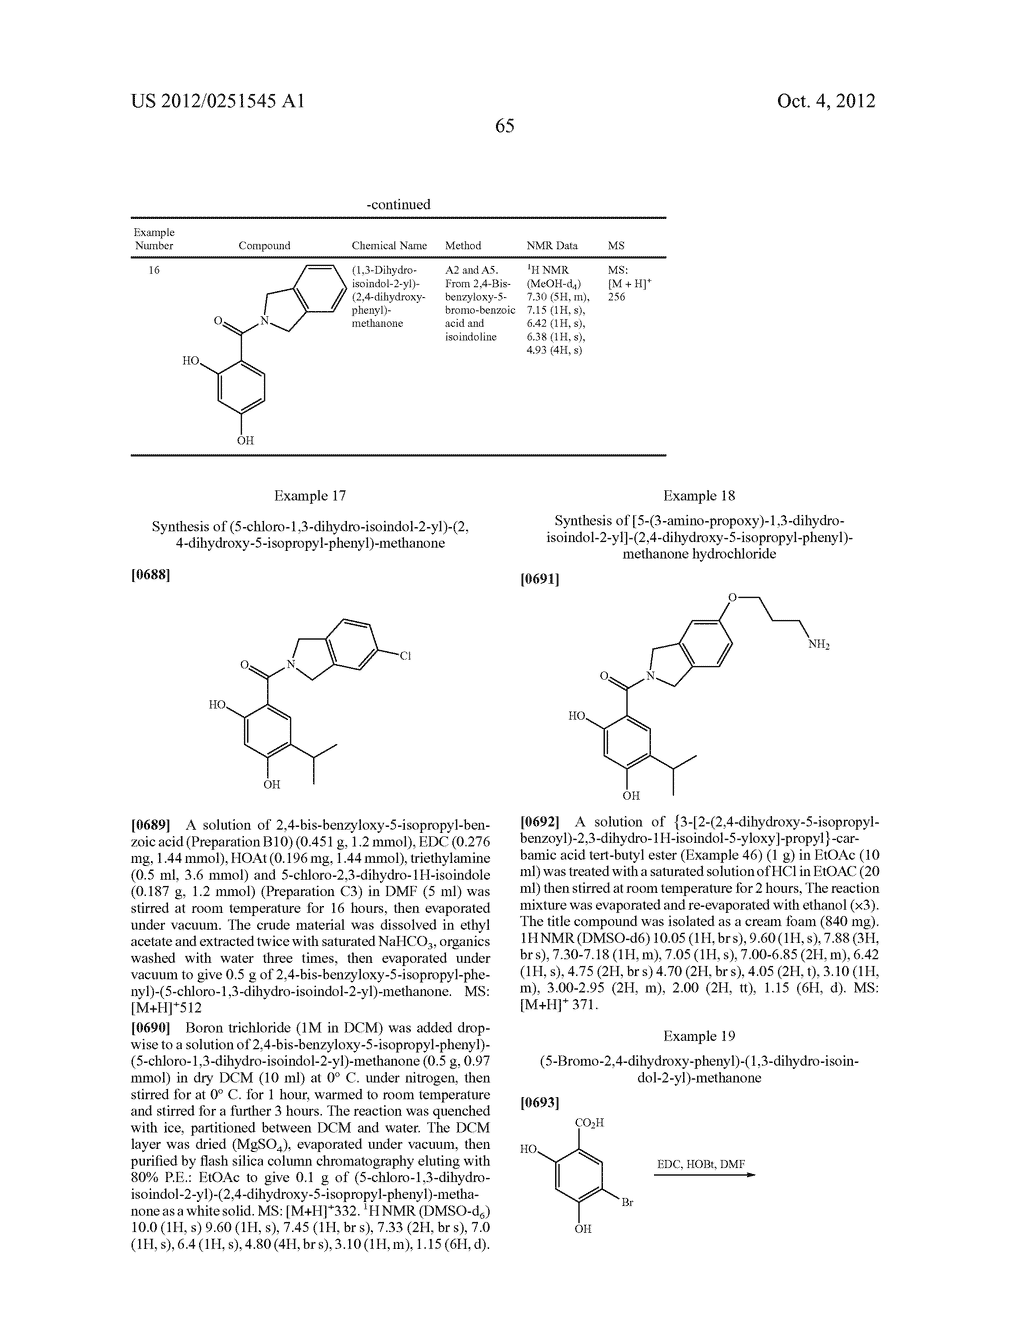 Therapeutic Combinations Of Hydroxybenzamide Derivatives As Inhibitors Of     HSP90 - diagram, schematic, and image 66